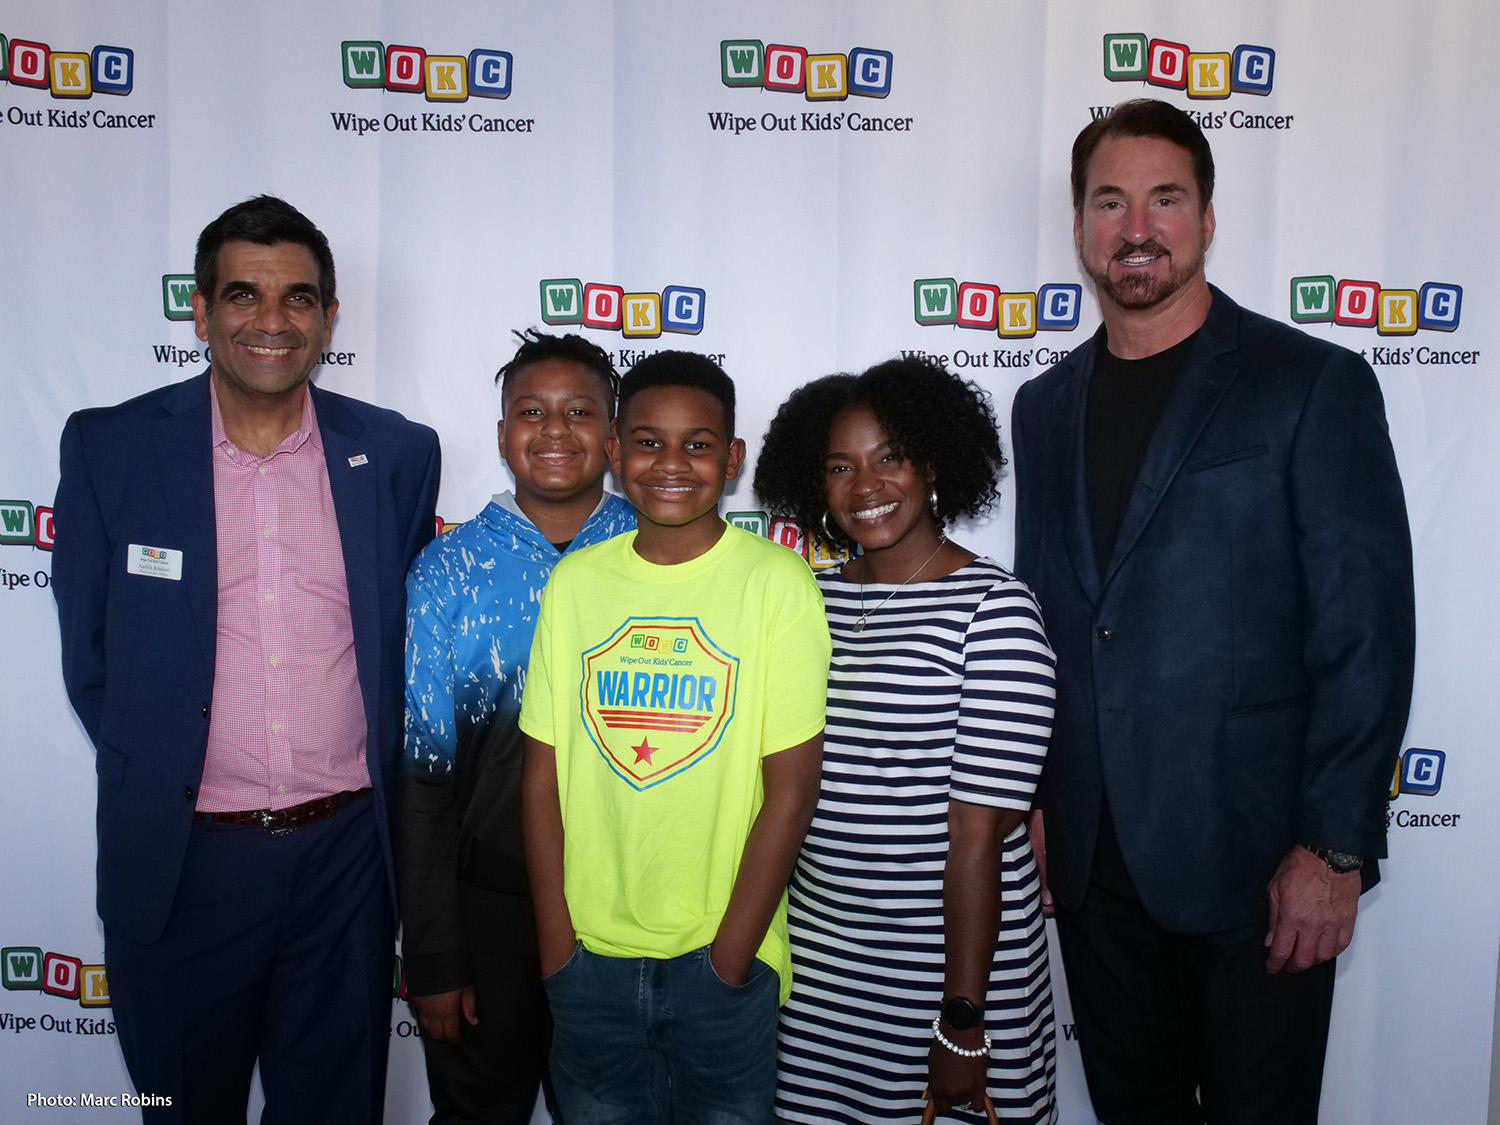 Former Cowboys QB Babe Laufenberg Surprises Wipe Out Kids' Cancer Warriors & Their Families at Viewing Party for WOKC Buddy Bag Bash